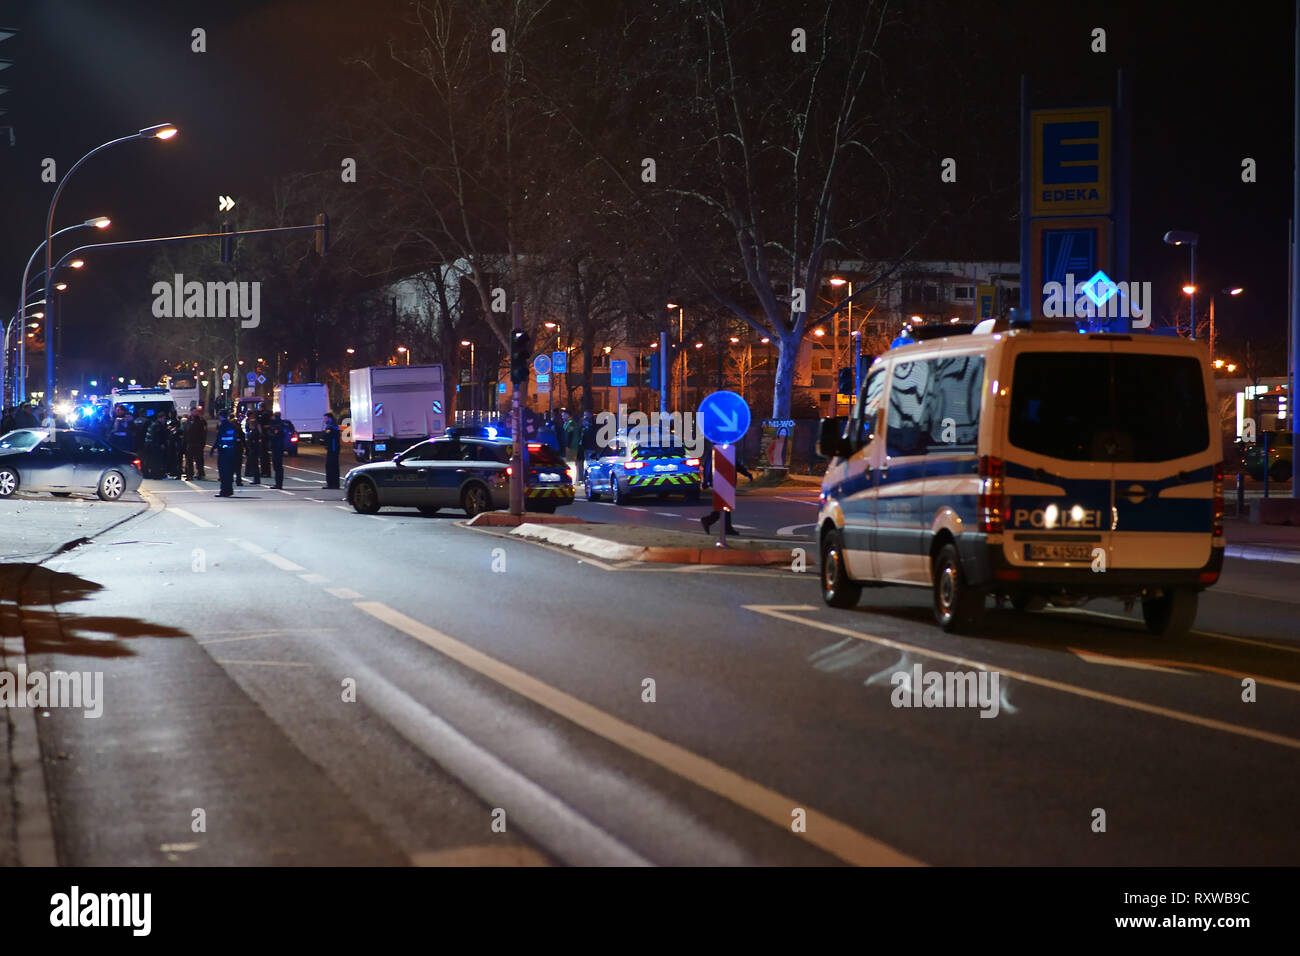 Mainz, Germany - March 01, 2019: Police cars with siren and blue lights blocking the street after a regional football match on March 01, 2019 in Mainz - Stock Image